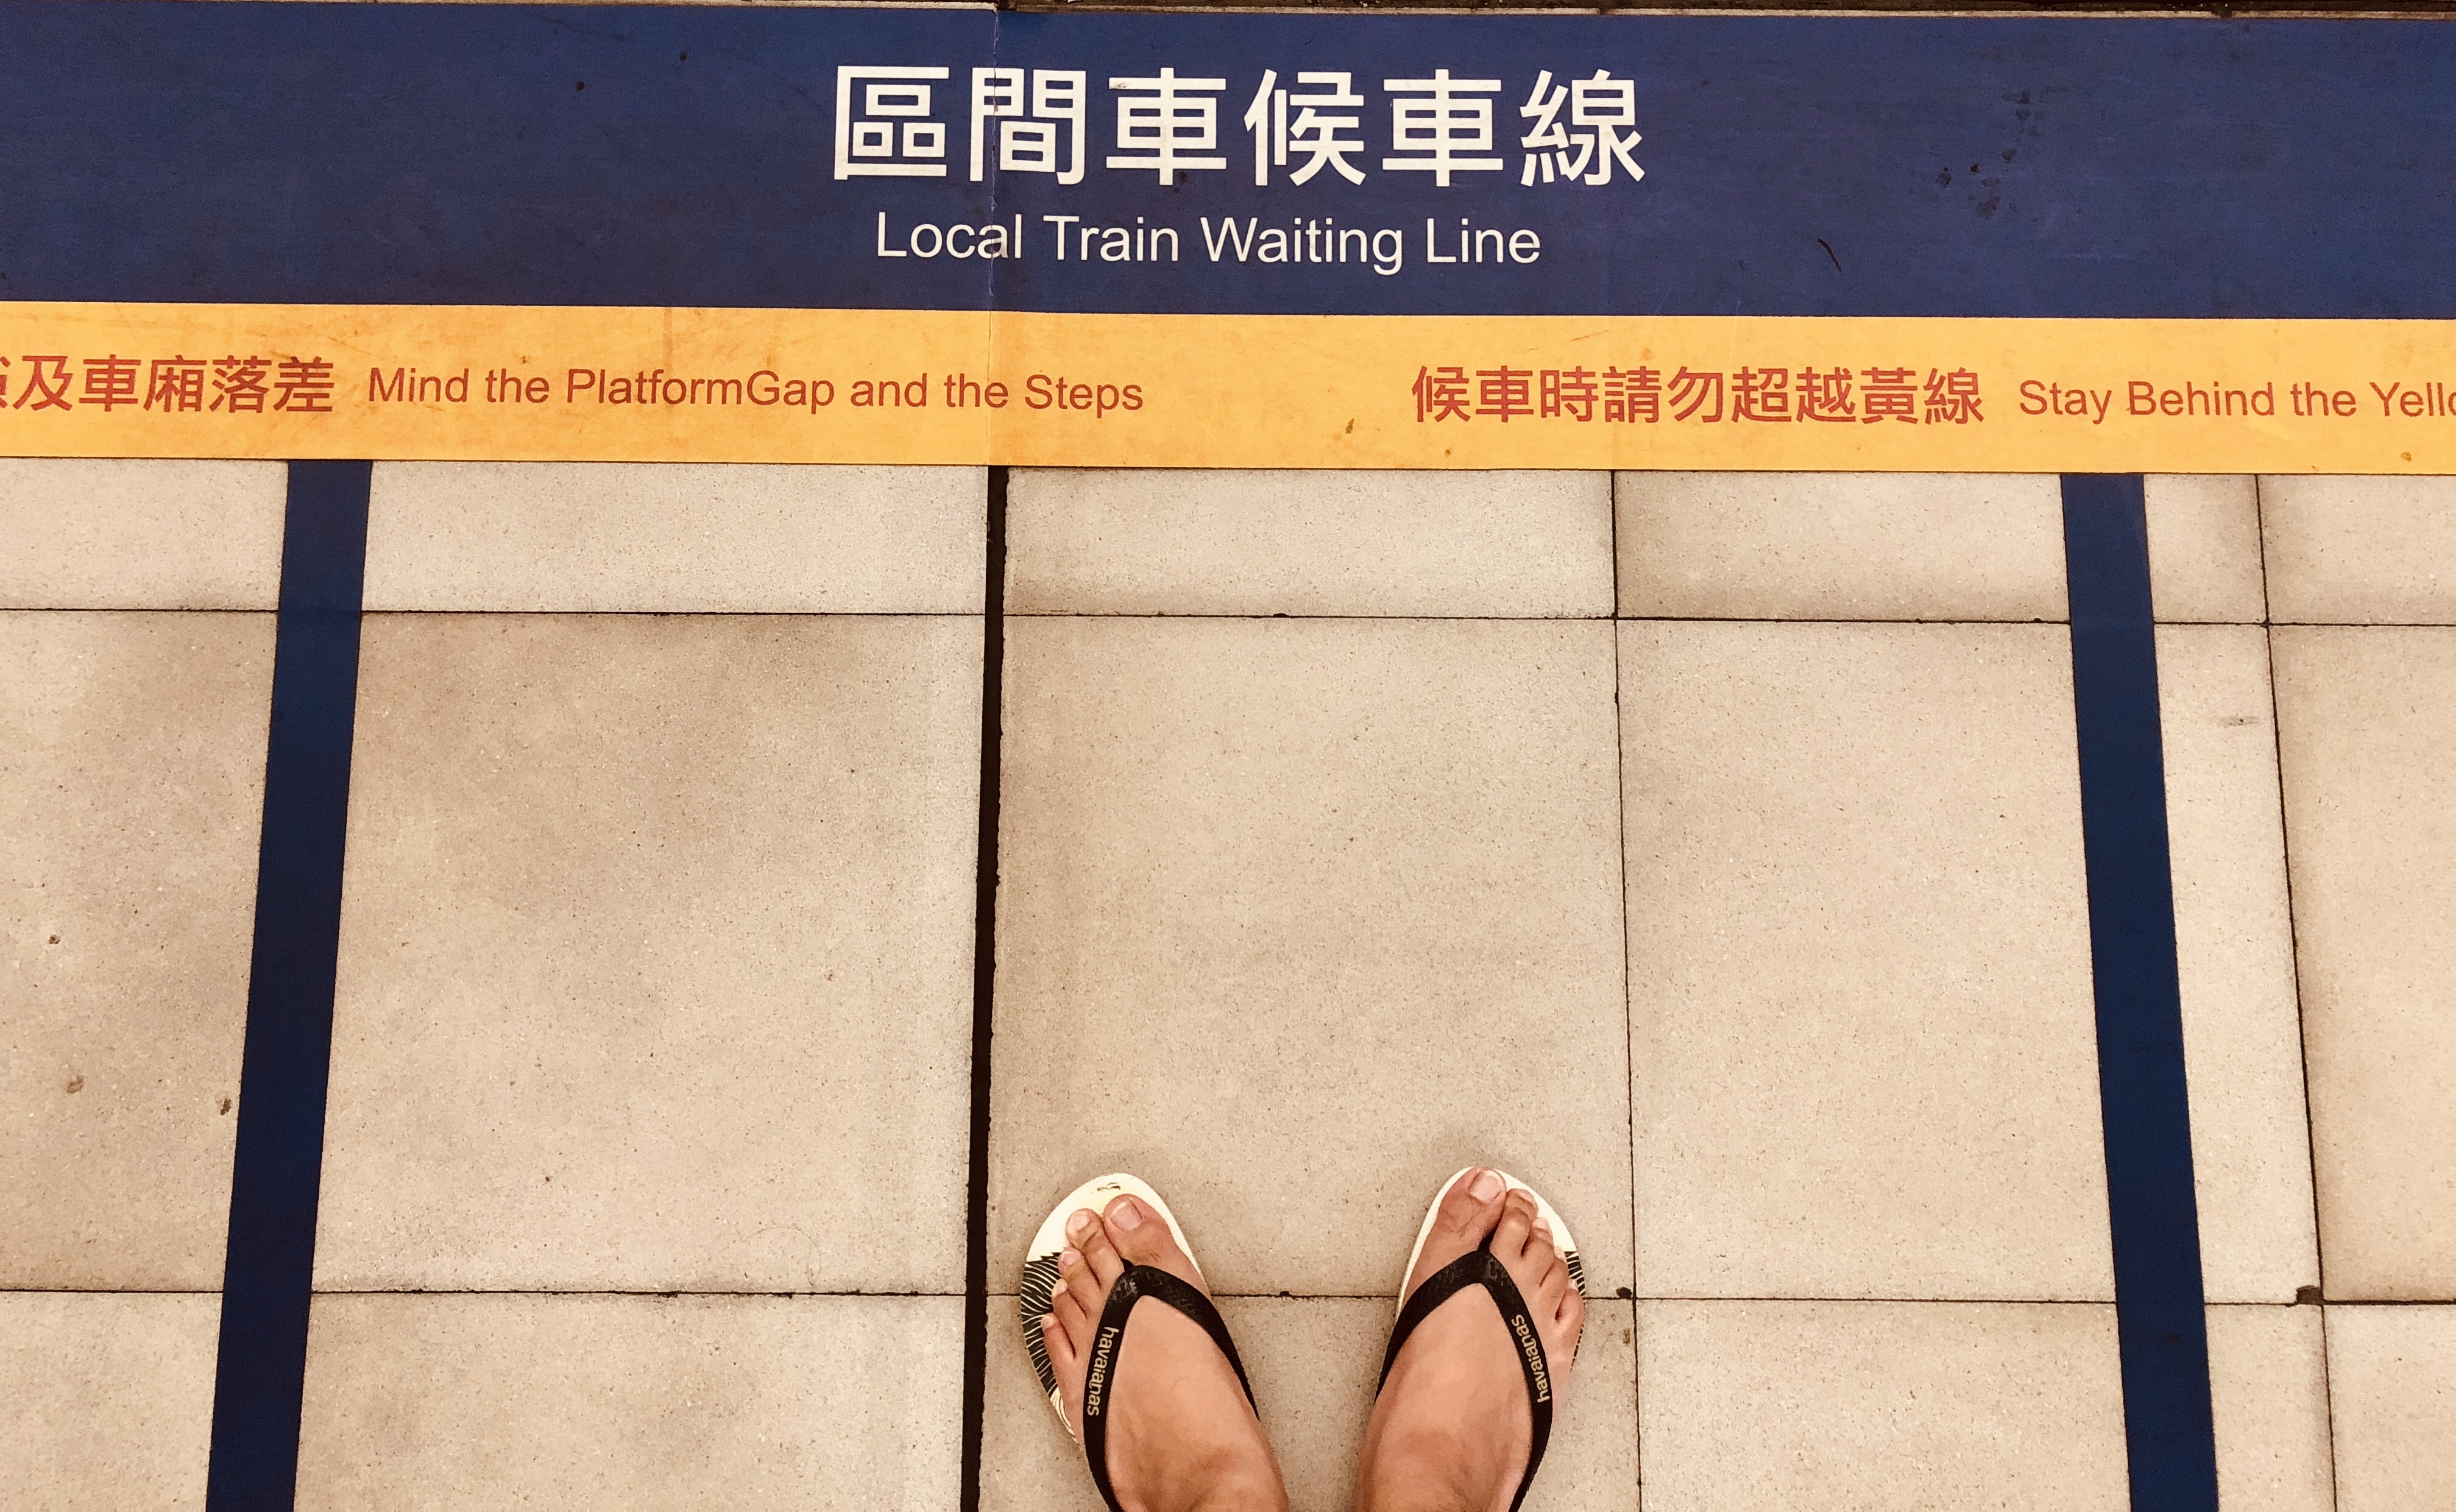 person facing local train waiting line signage